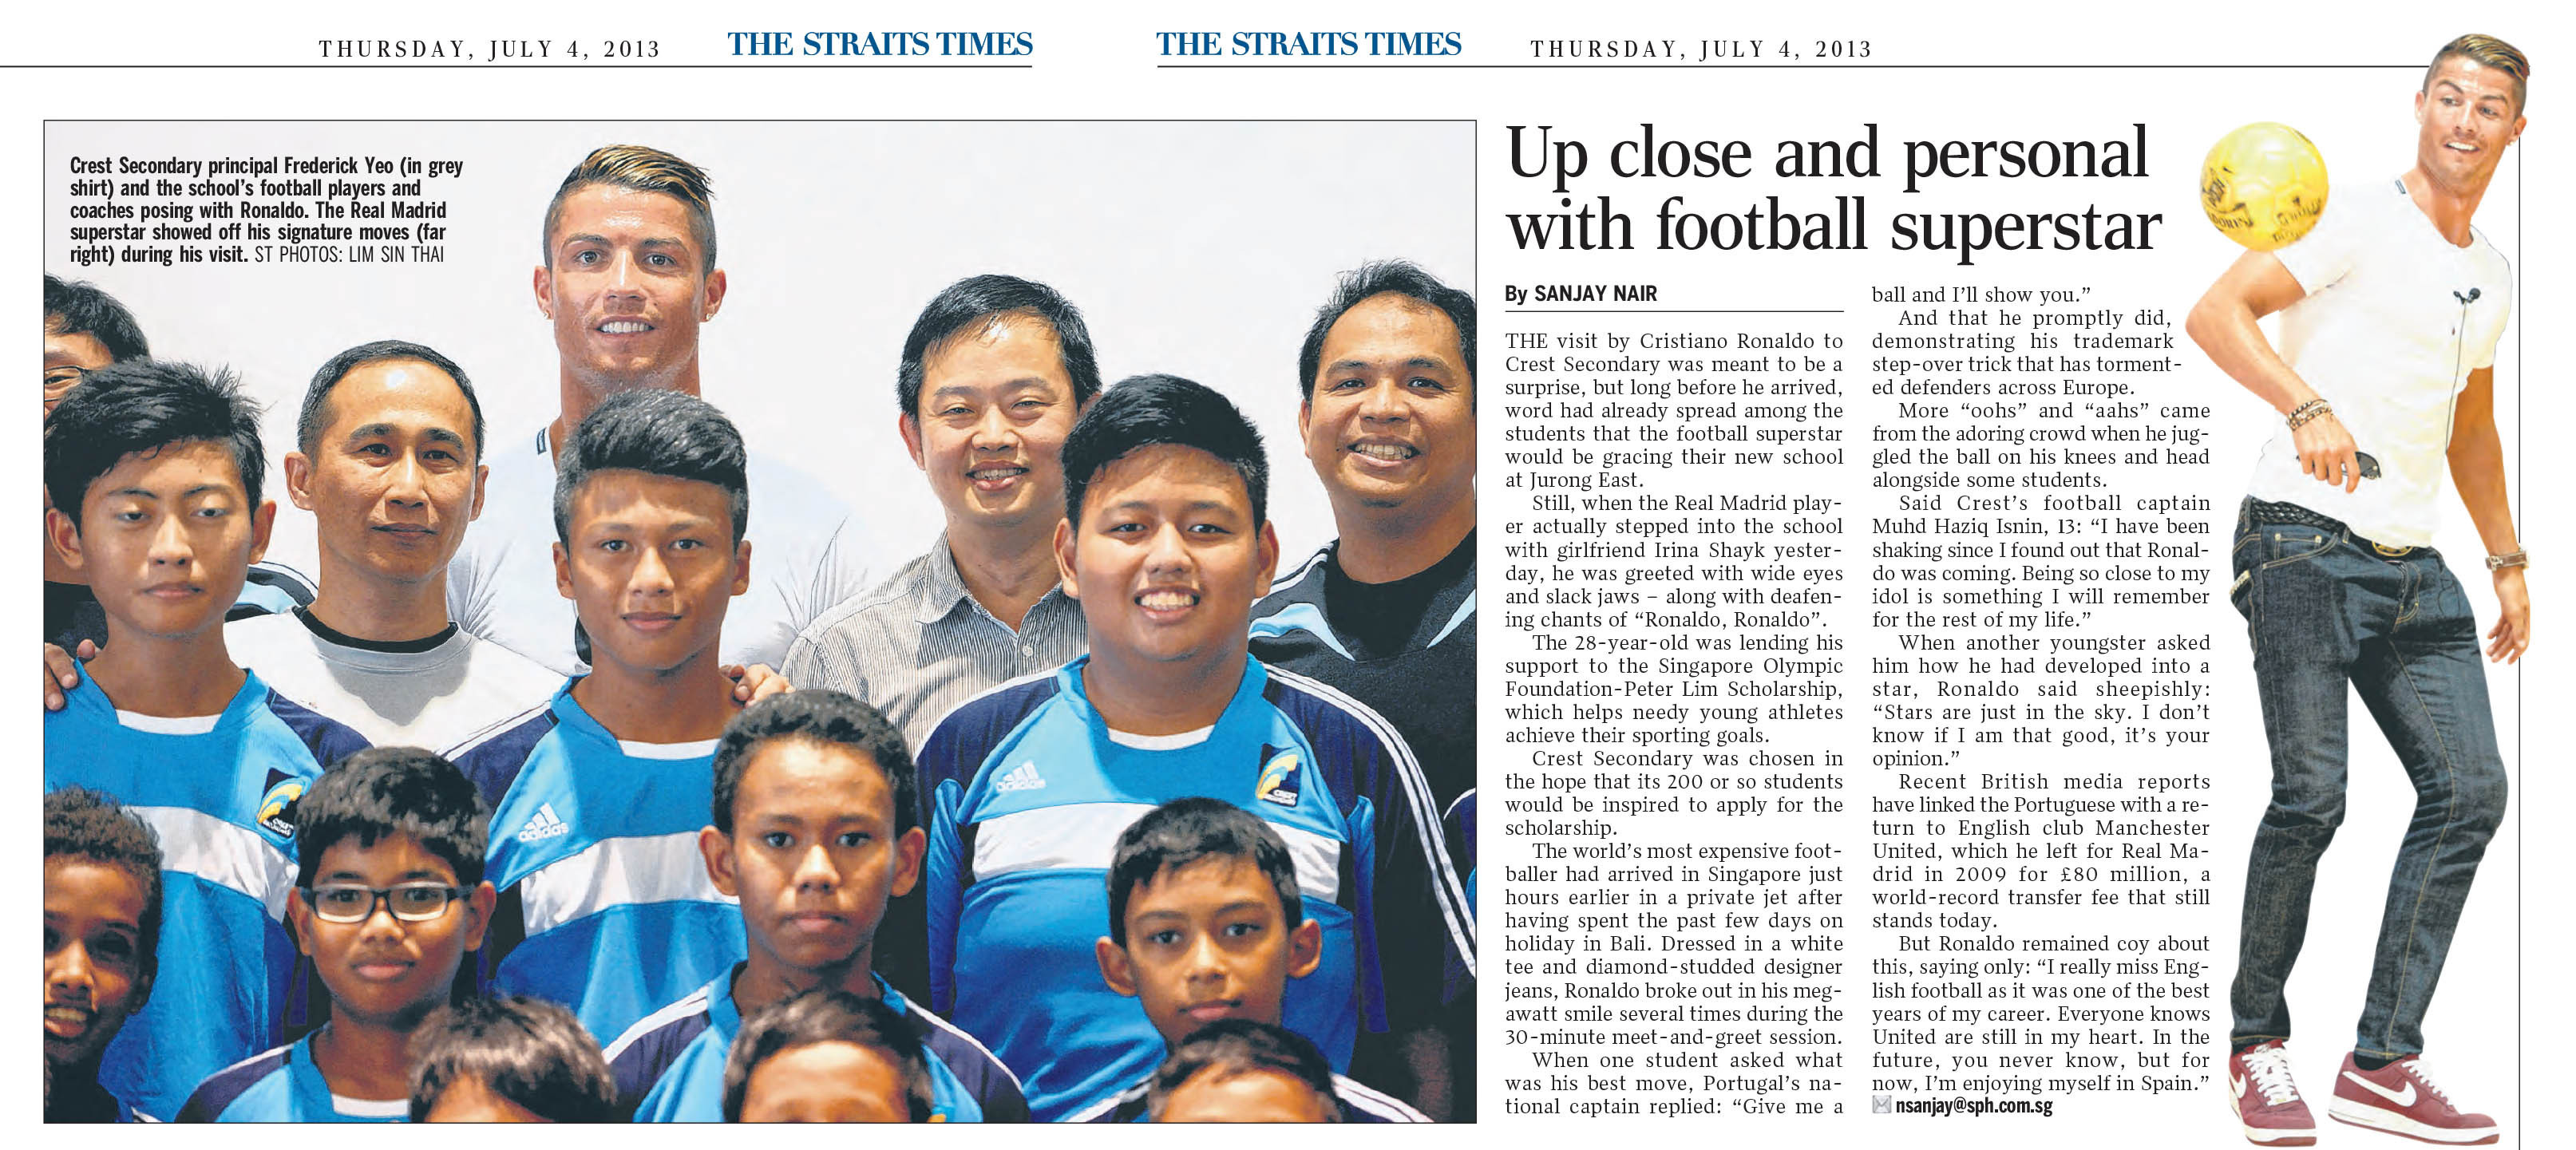 Published The Straits Times (040713).jpg